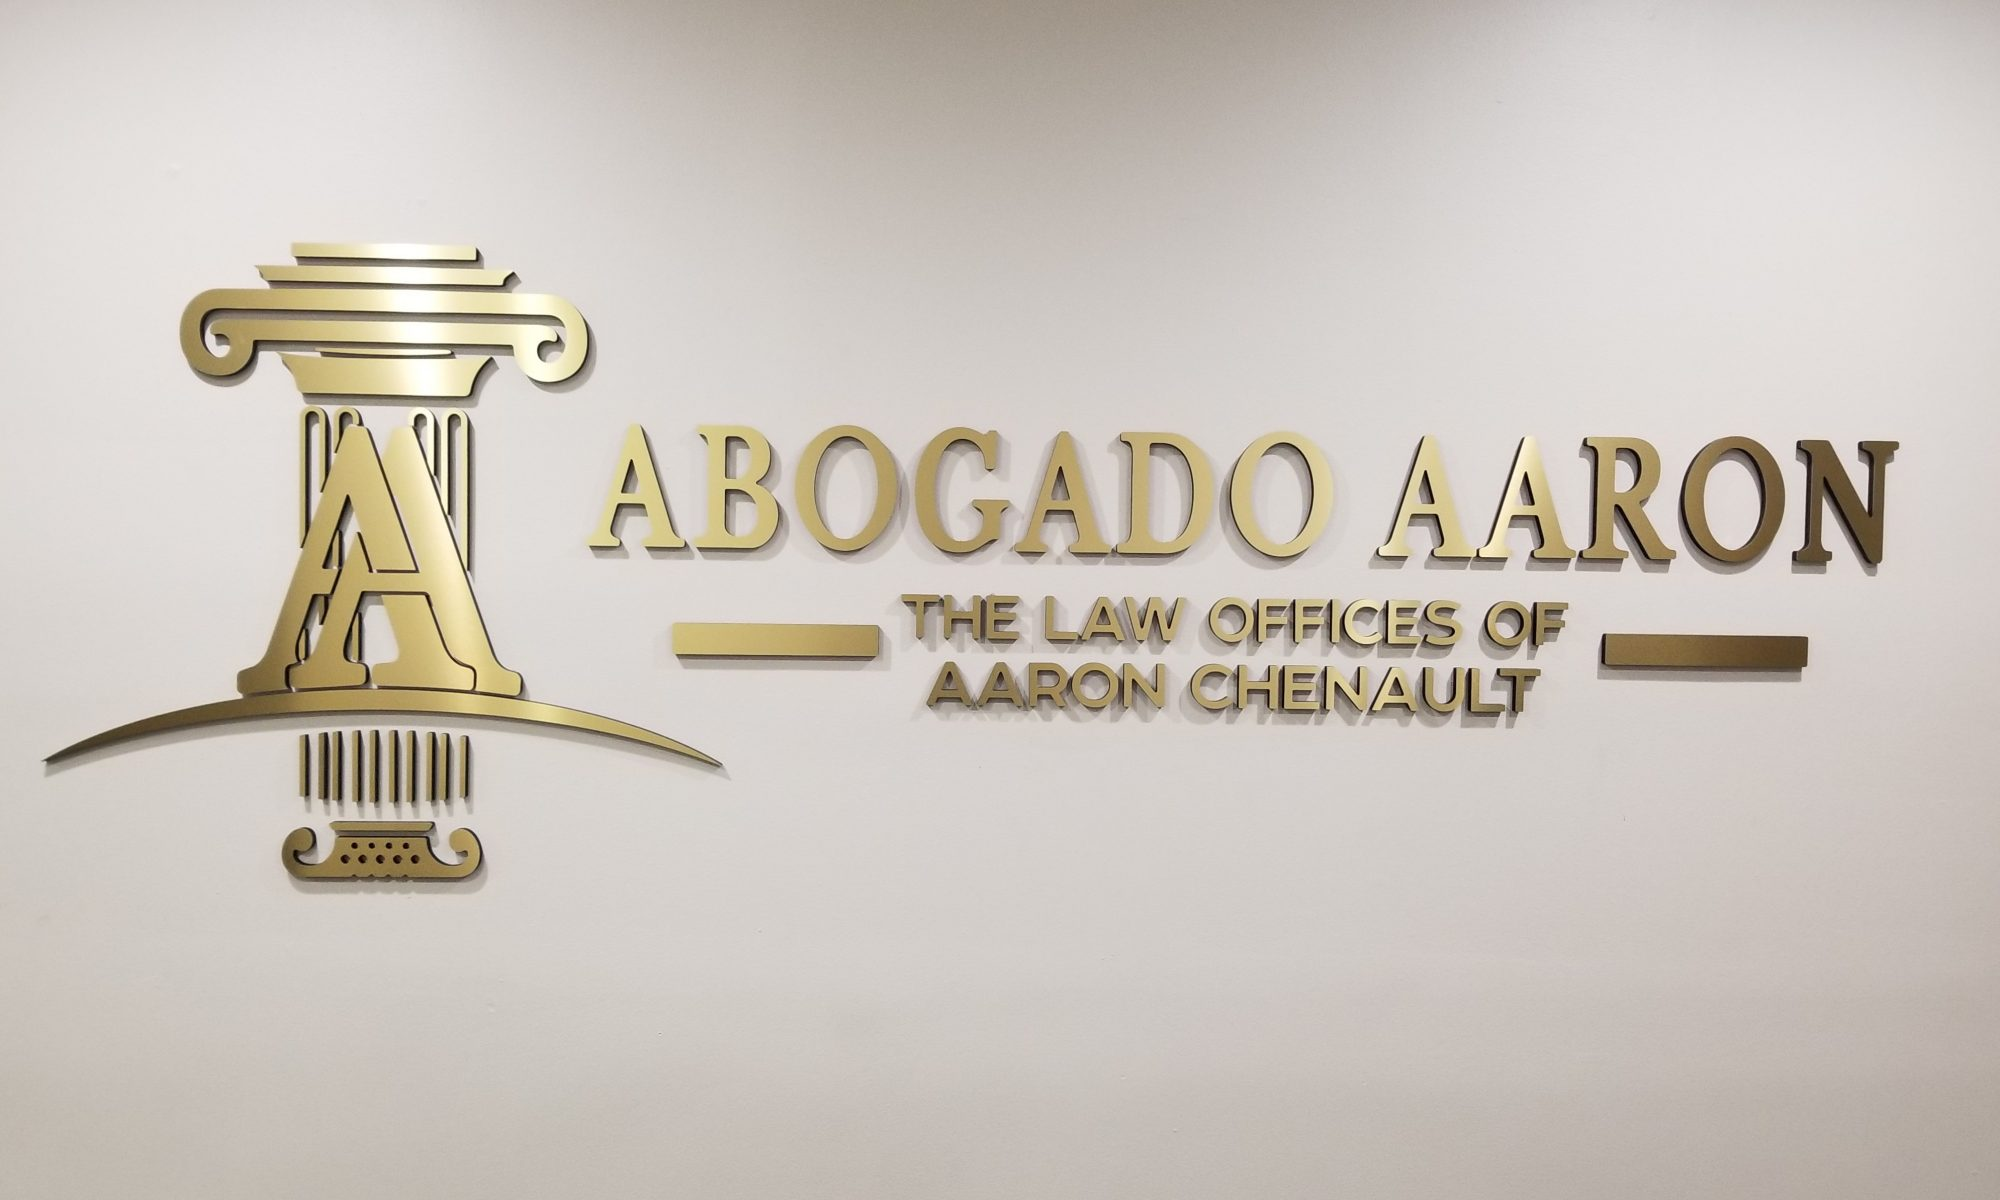 The impressive law office lobby sign we made and installed for Abogado Aaron's Los Angeles branch, conveying the caliber of legal services they provide.